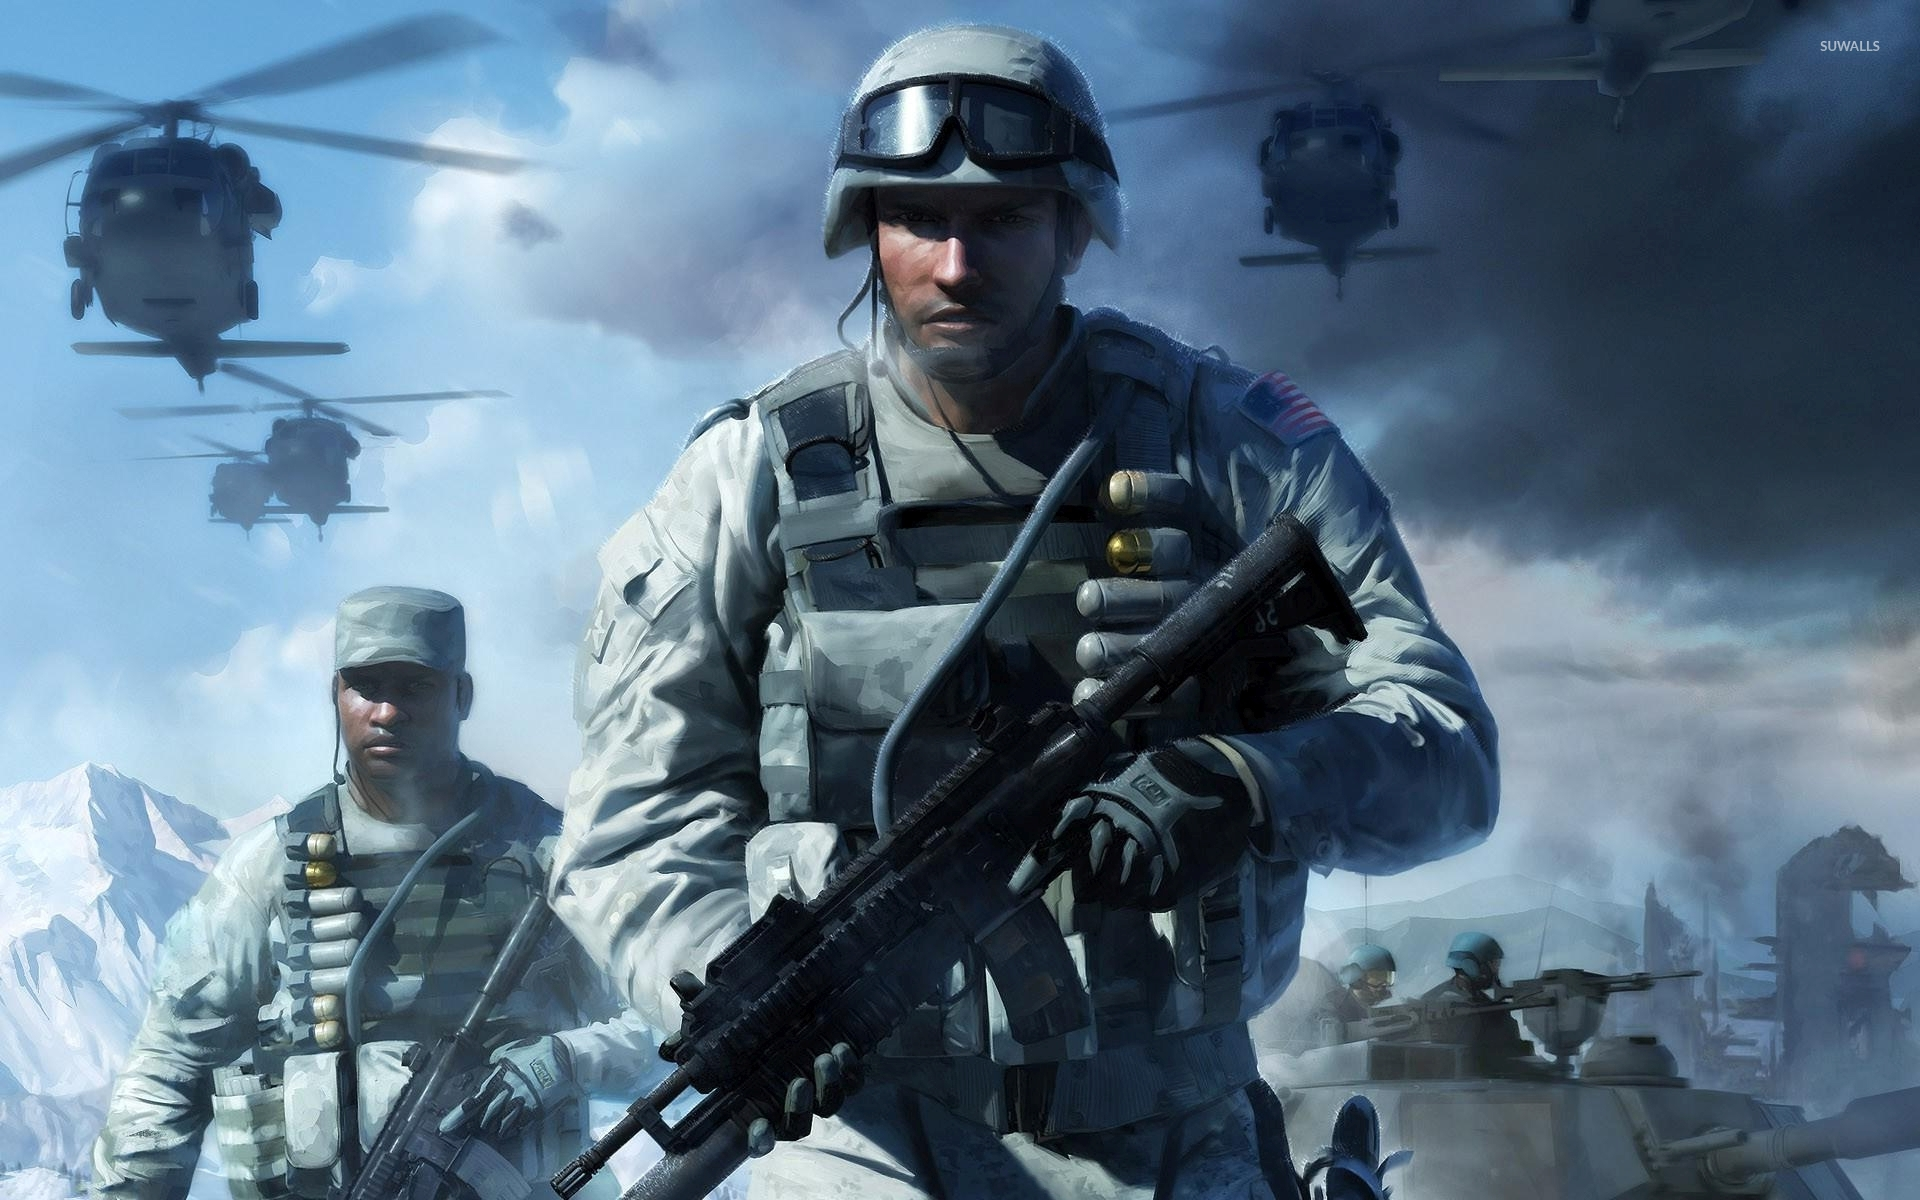 battlefield: bad company 2 [3] wallpaper - game wallpapers - #34695